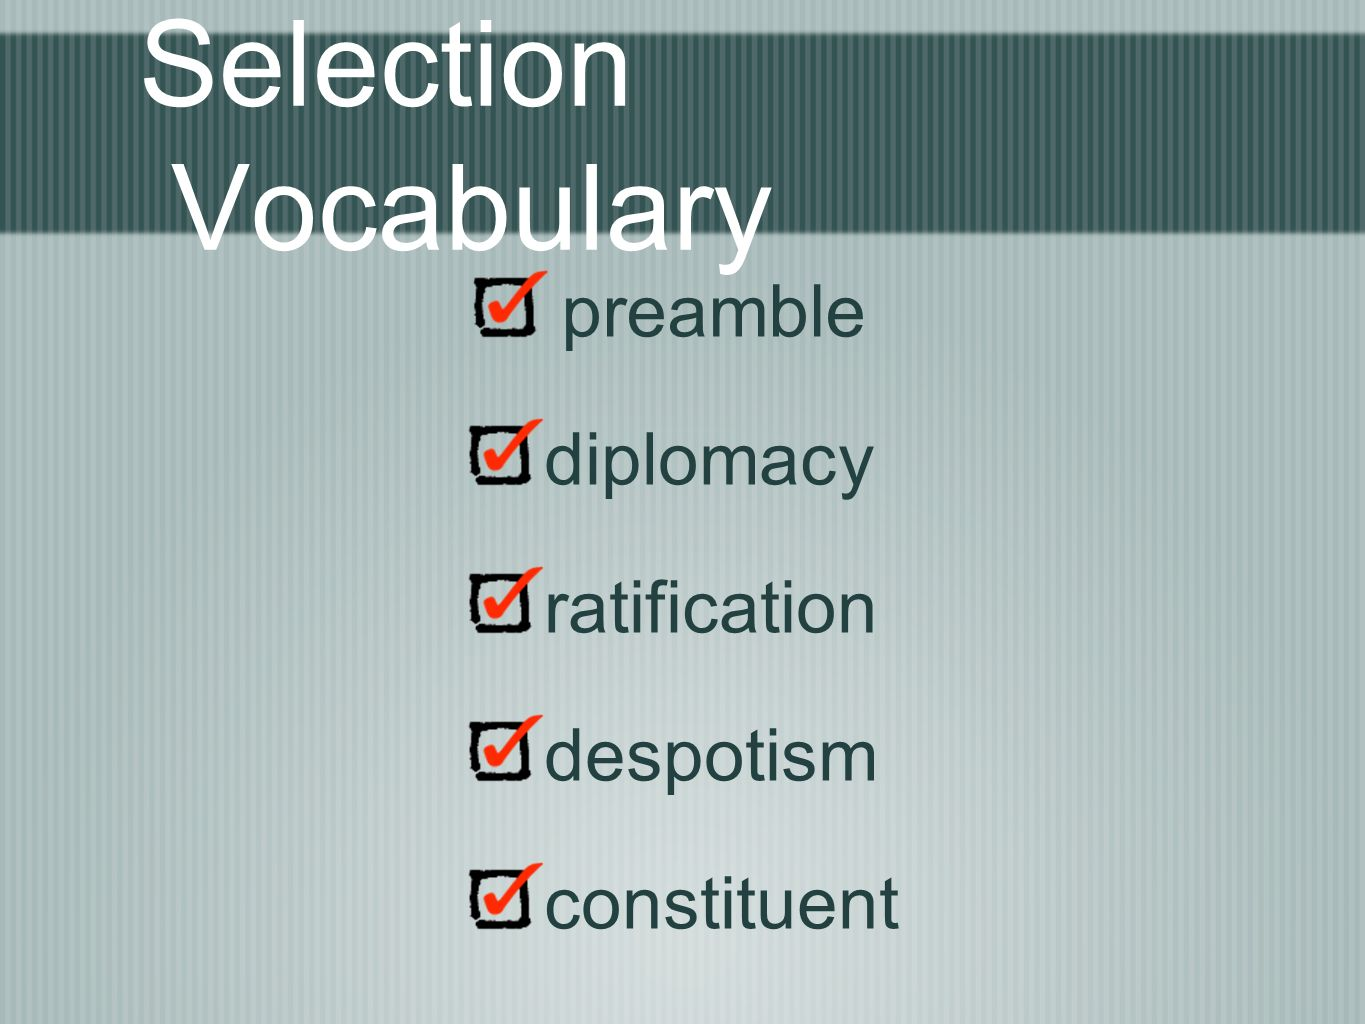 Selection Vocabulary preamble diplomacy ratification despotism